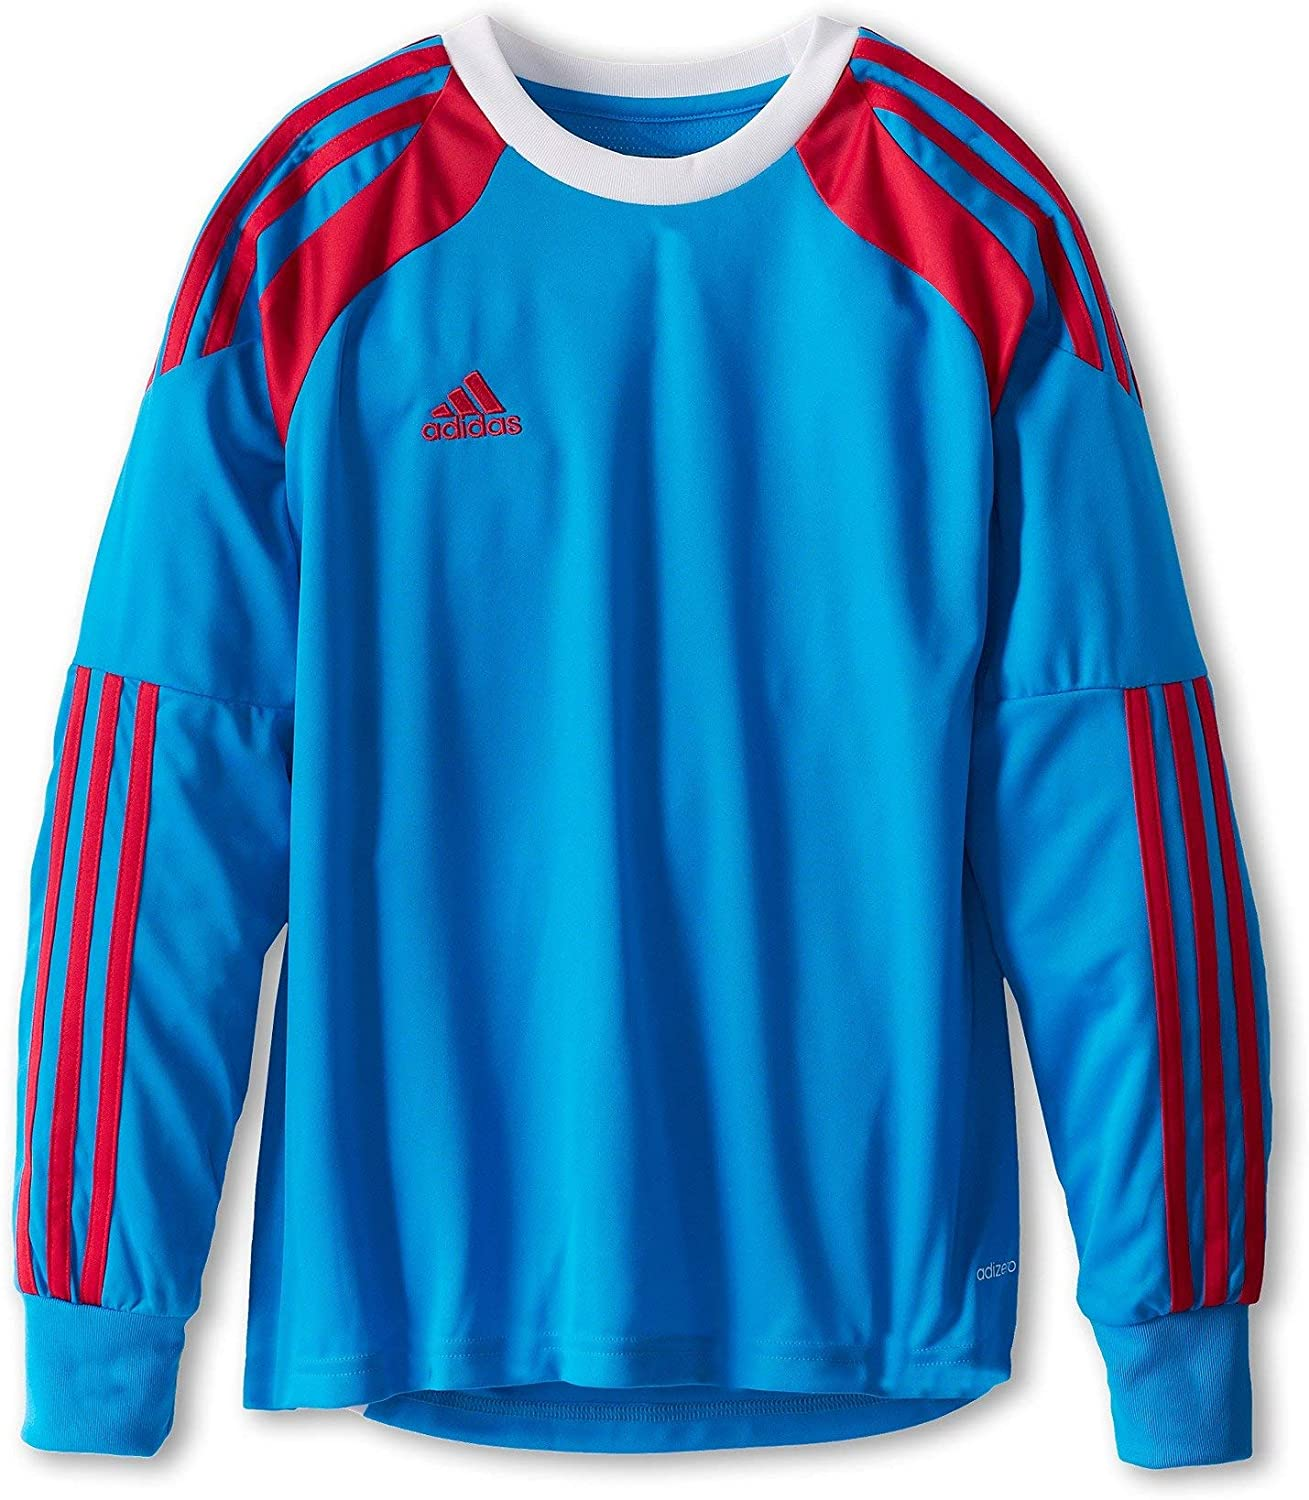 Adidas Youth Onore Goalkeeper Jersey